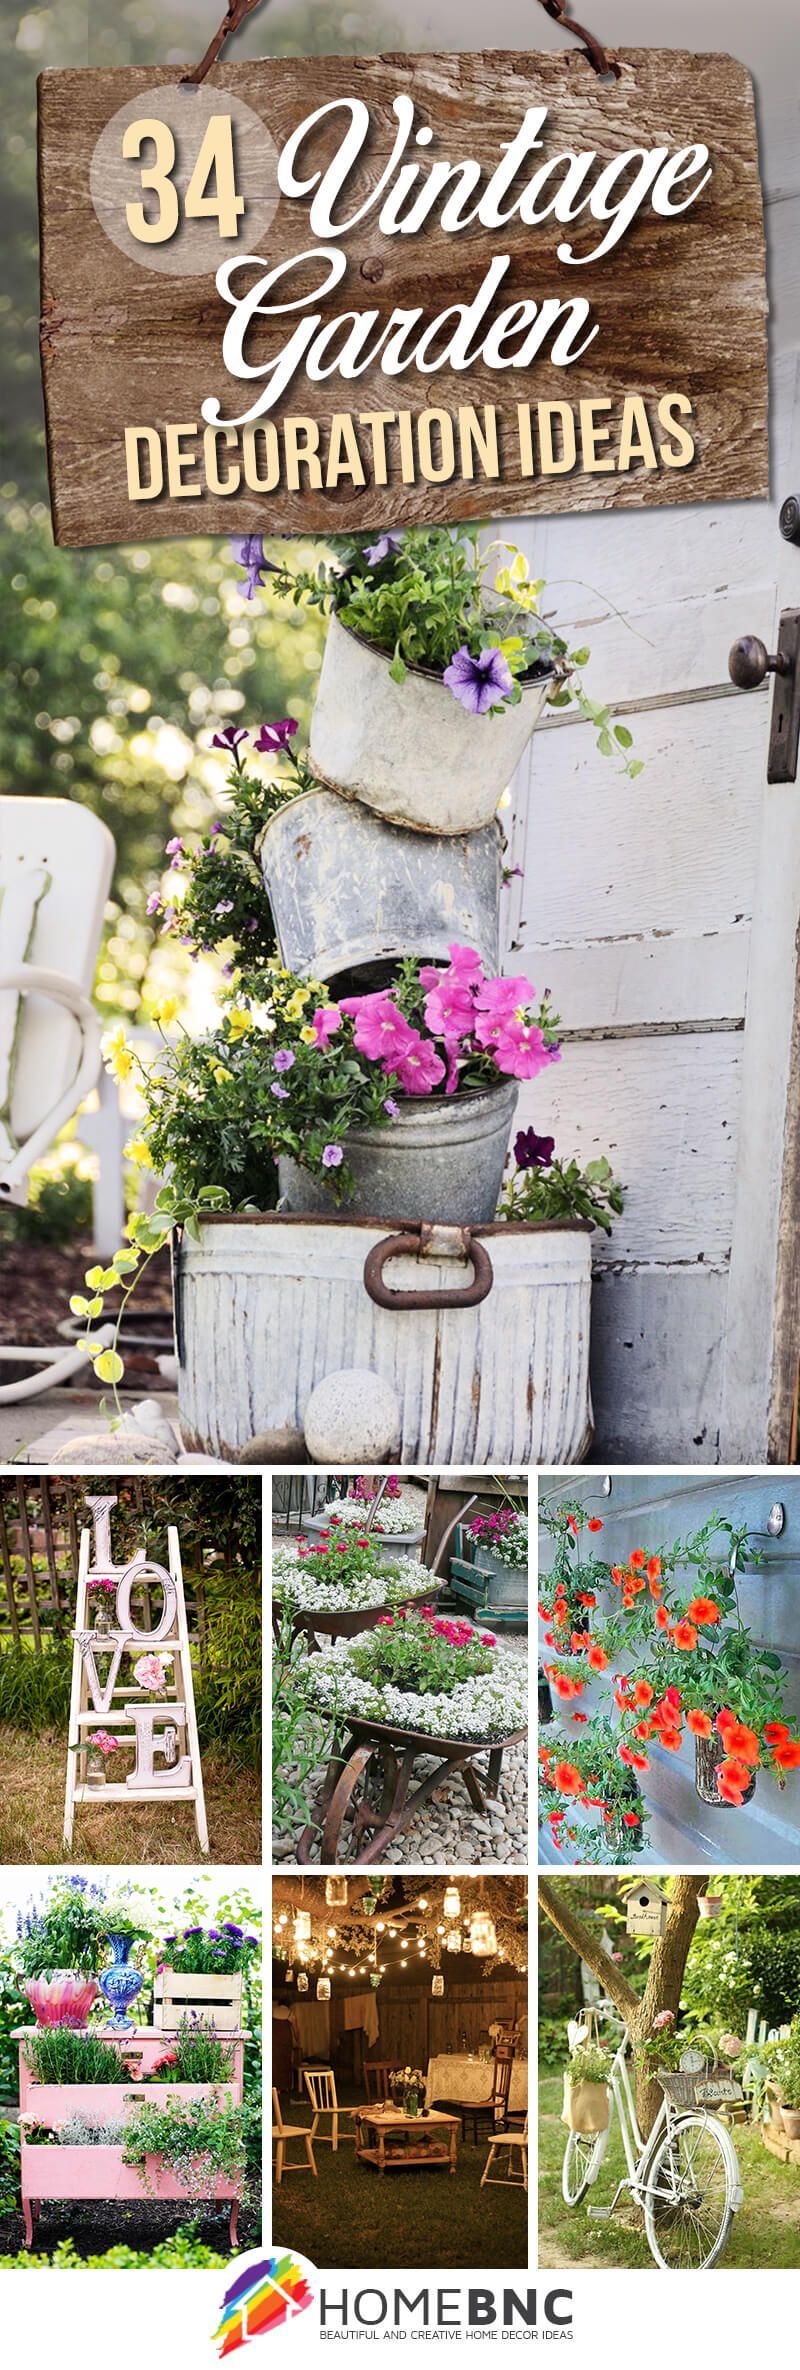 Vintage Garden Decor Ideas To Give Your Outdoor Space Vintage Flair